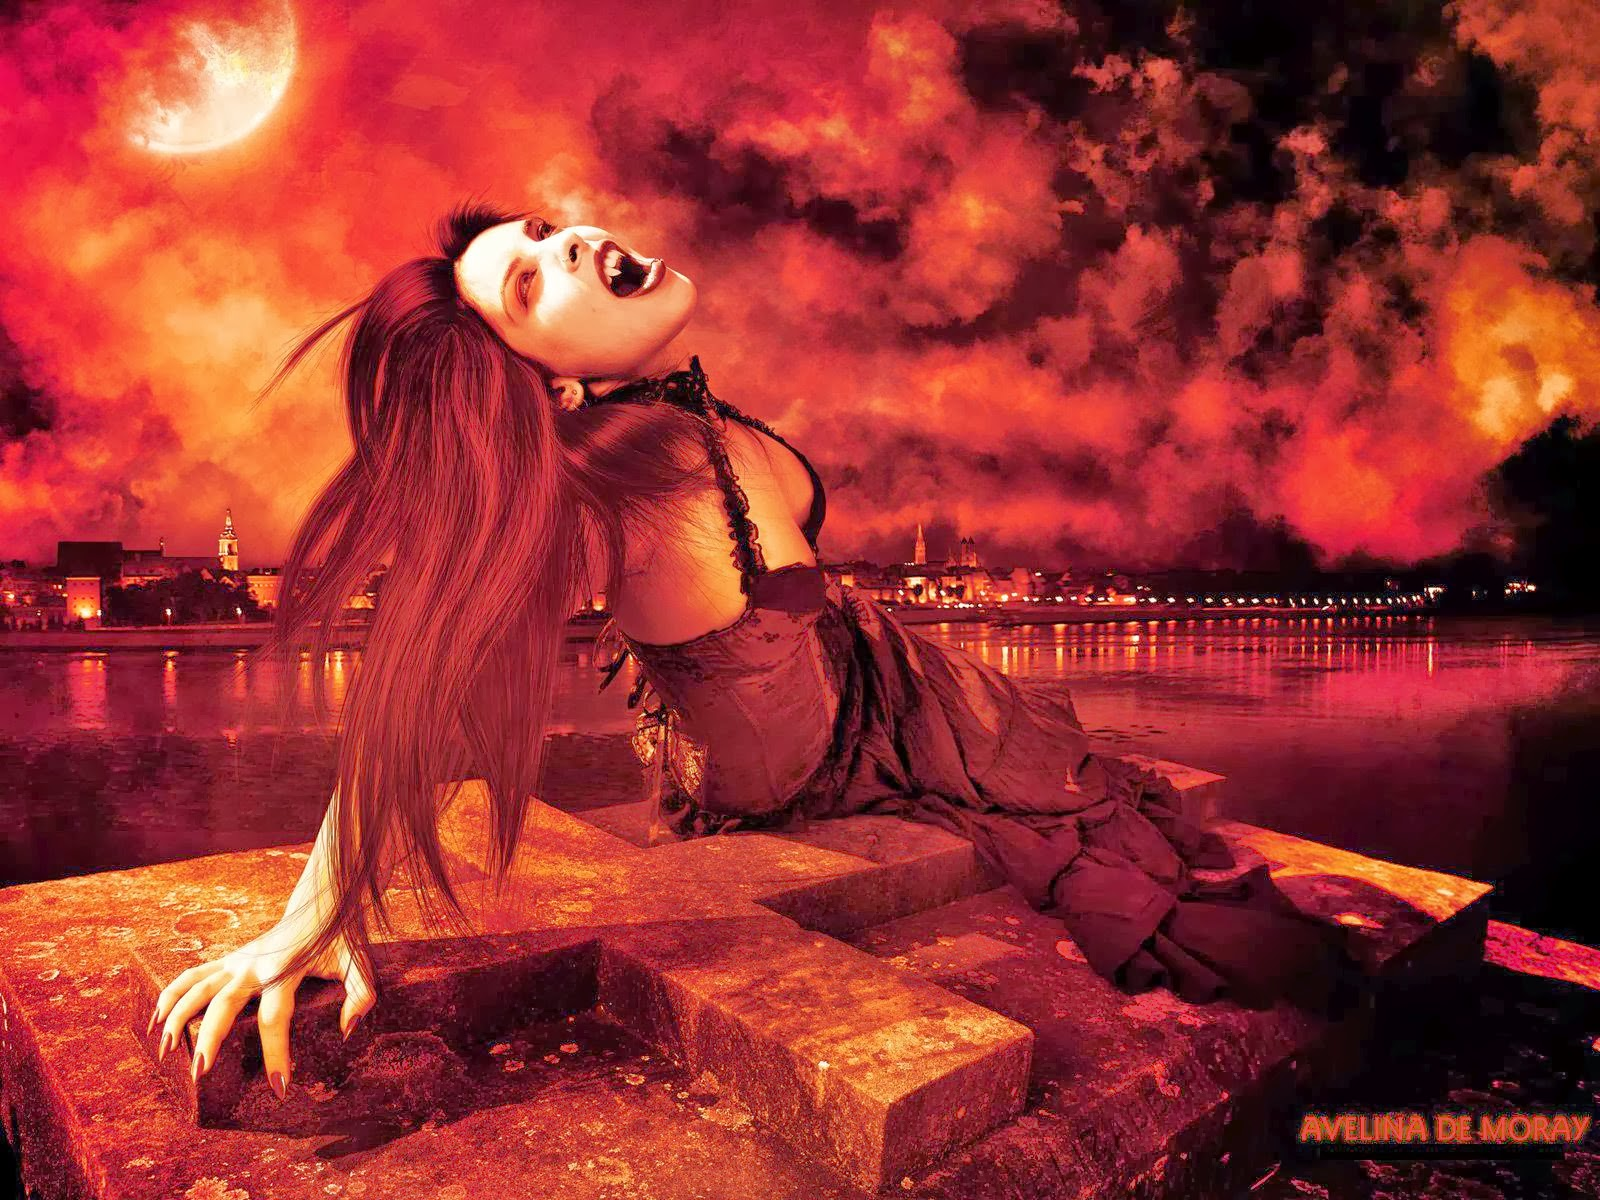 Vampire Wallpapers ~ HD Wallpapers | Funny Videos | Hot Girls Photos | Amazing Wallpapers ...